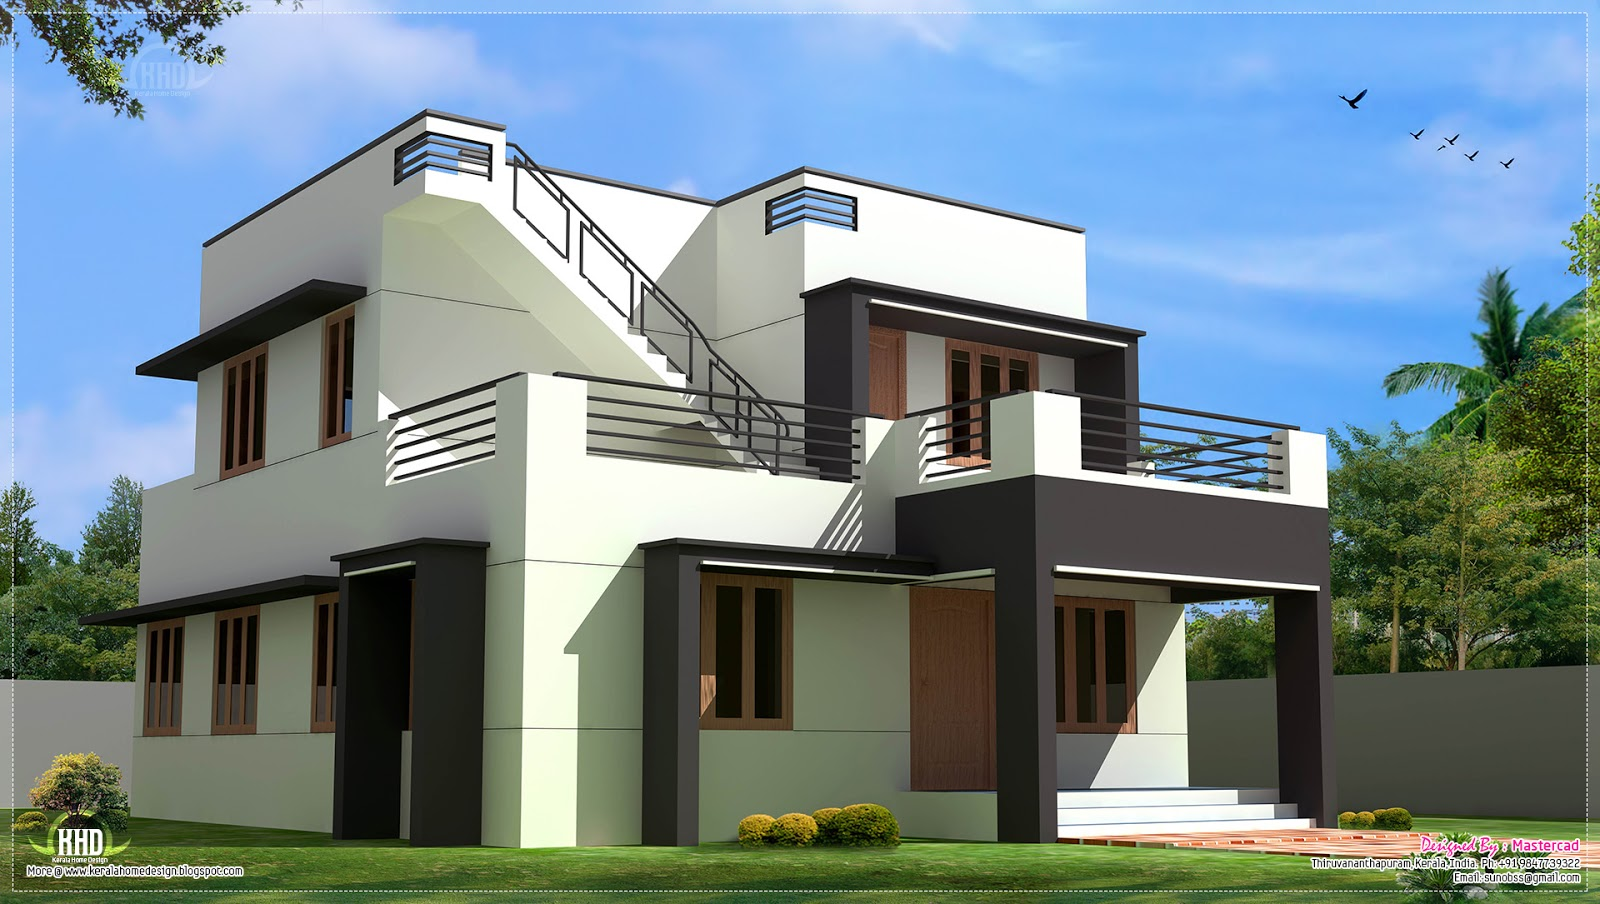 Modern House Design In 1700 Sqfeet